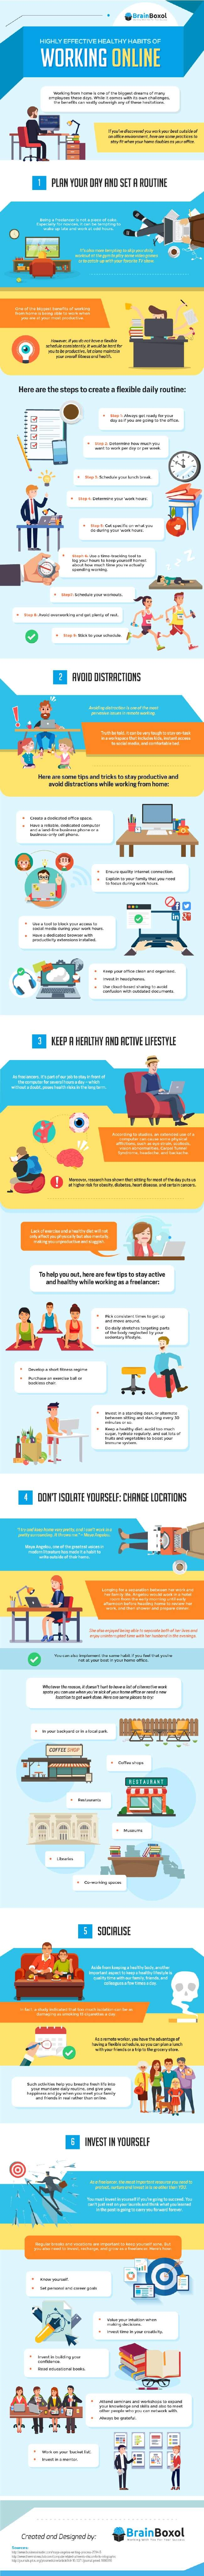 Image titled highly effective healthy habits of working online